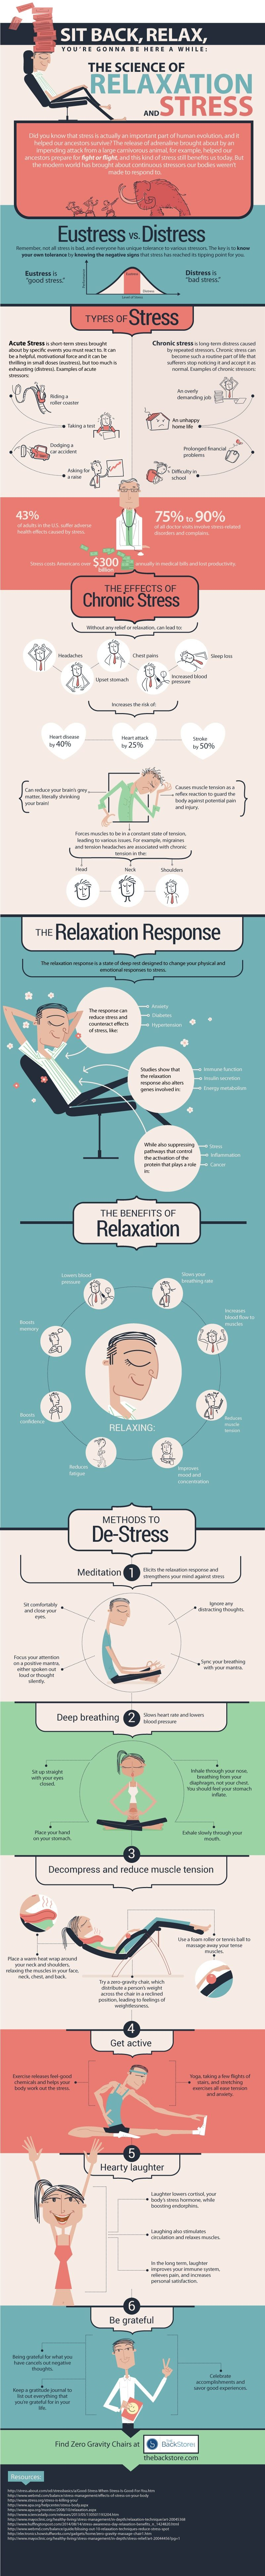 1410_graphic-the backstore-stress and relaxation_v2-compressed